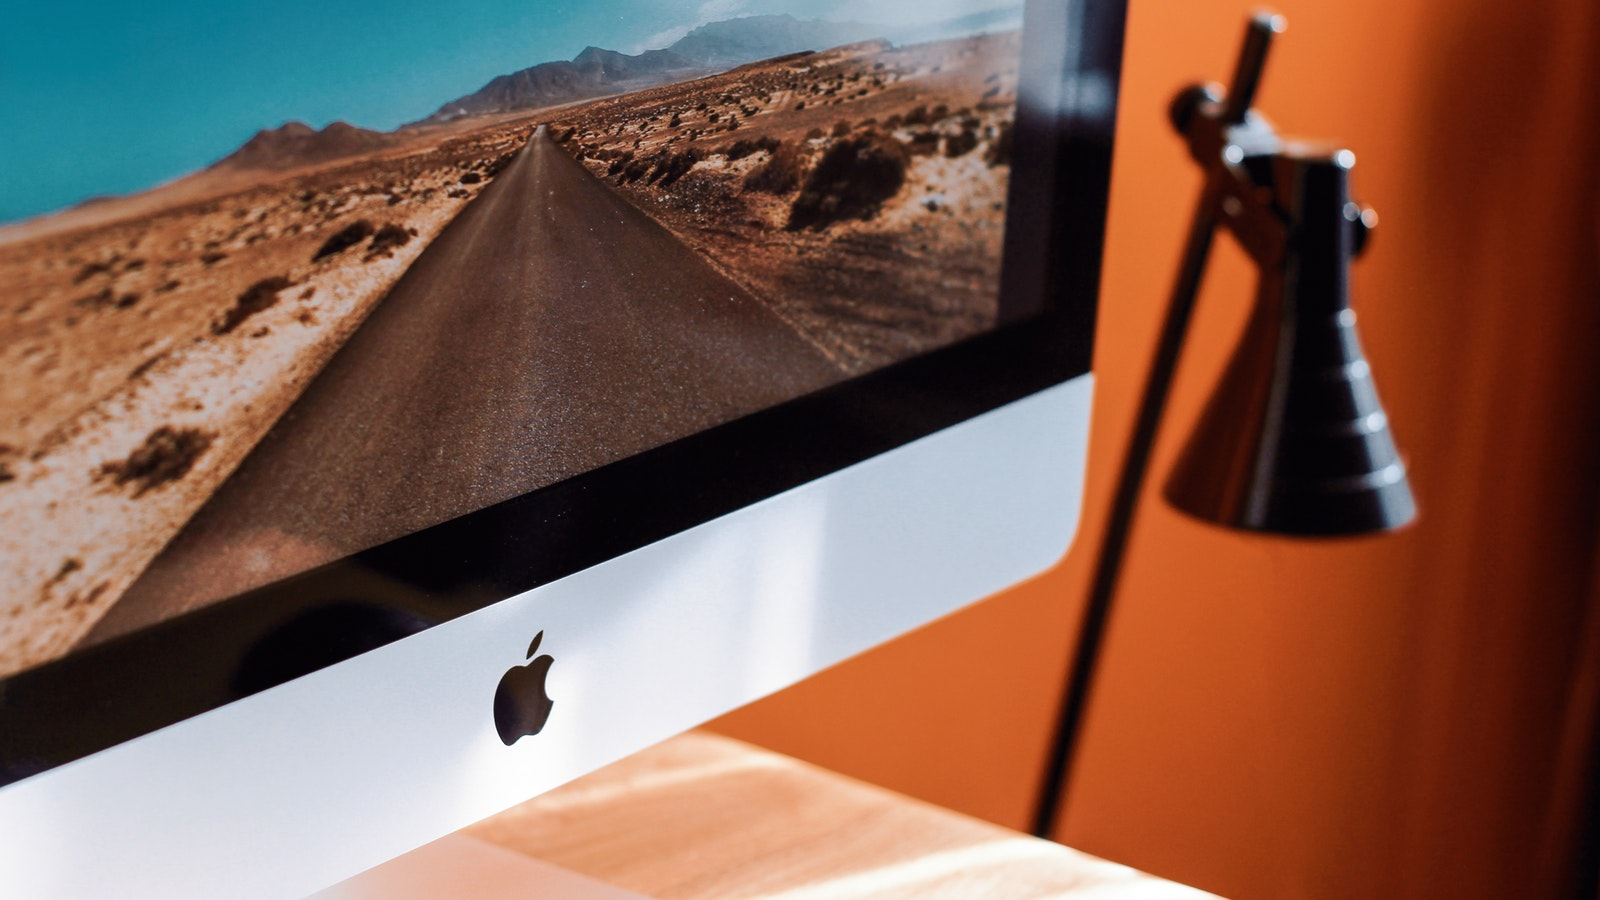 close-up-photography-of-imac-turned-on-1034650